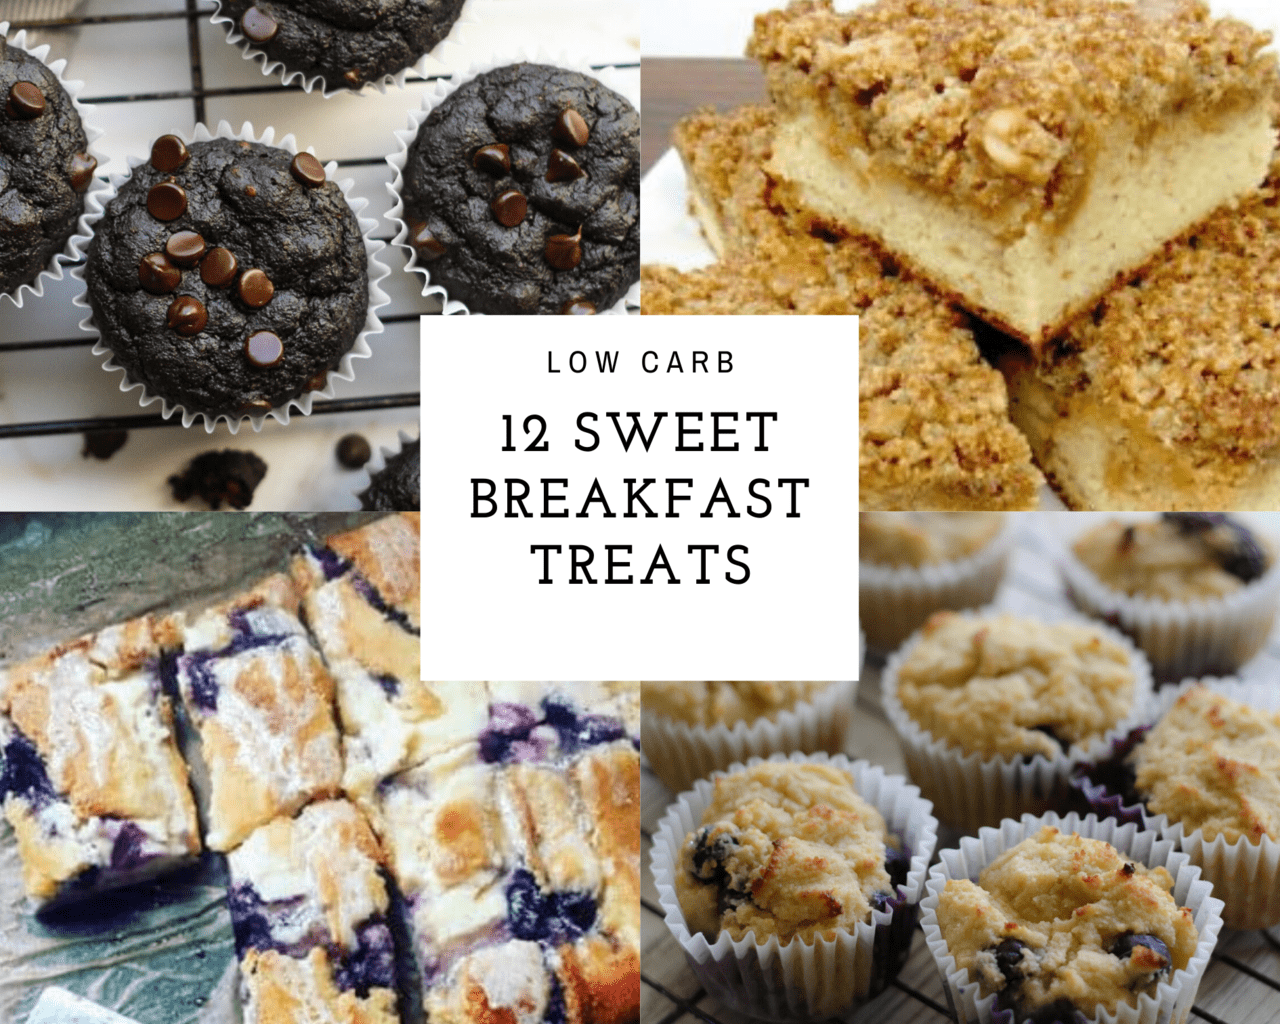 12 Low Carb Sweet Treats For Breakfast Noshin Num Nums